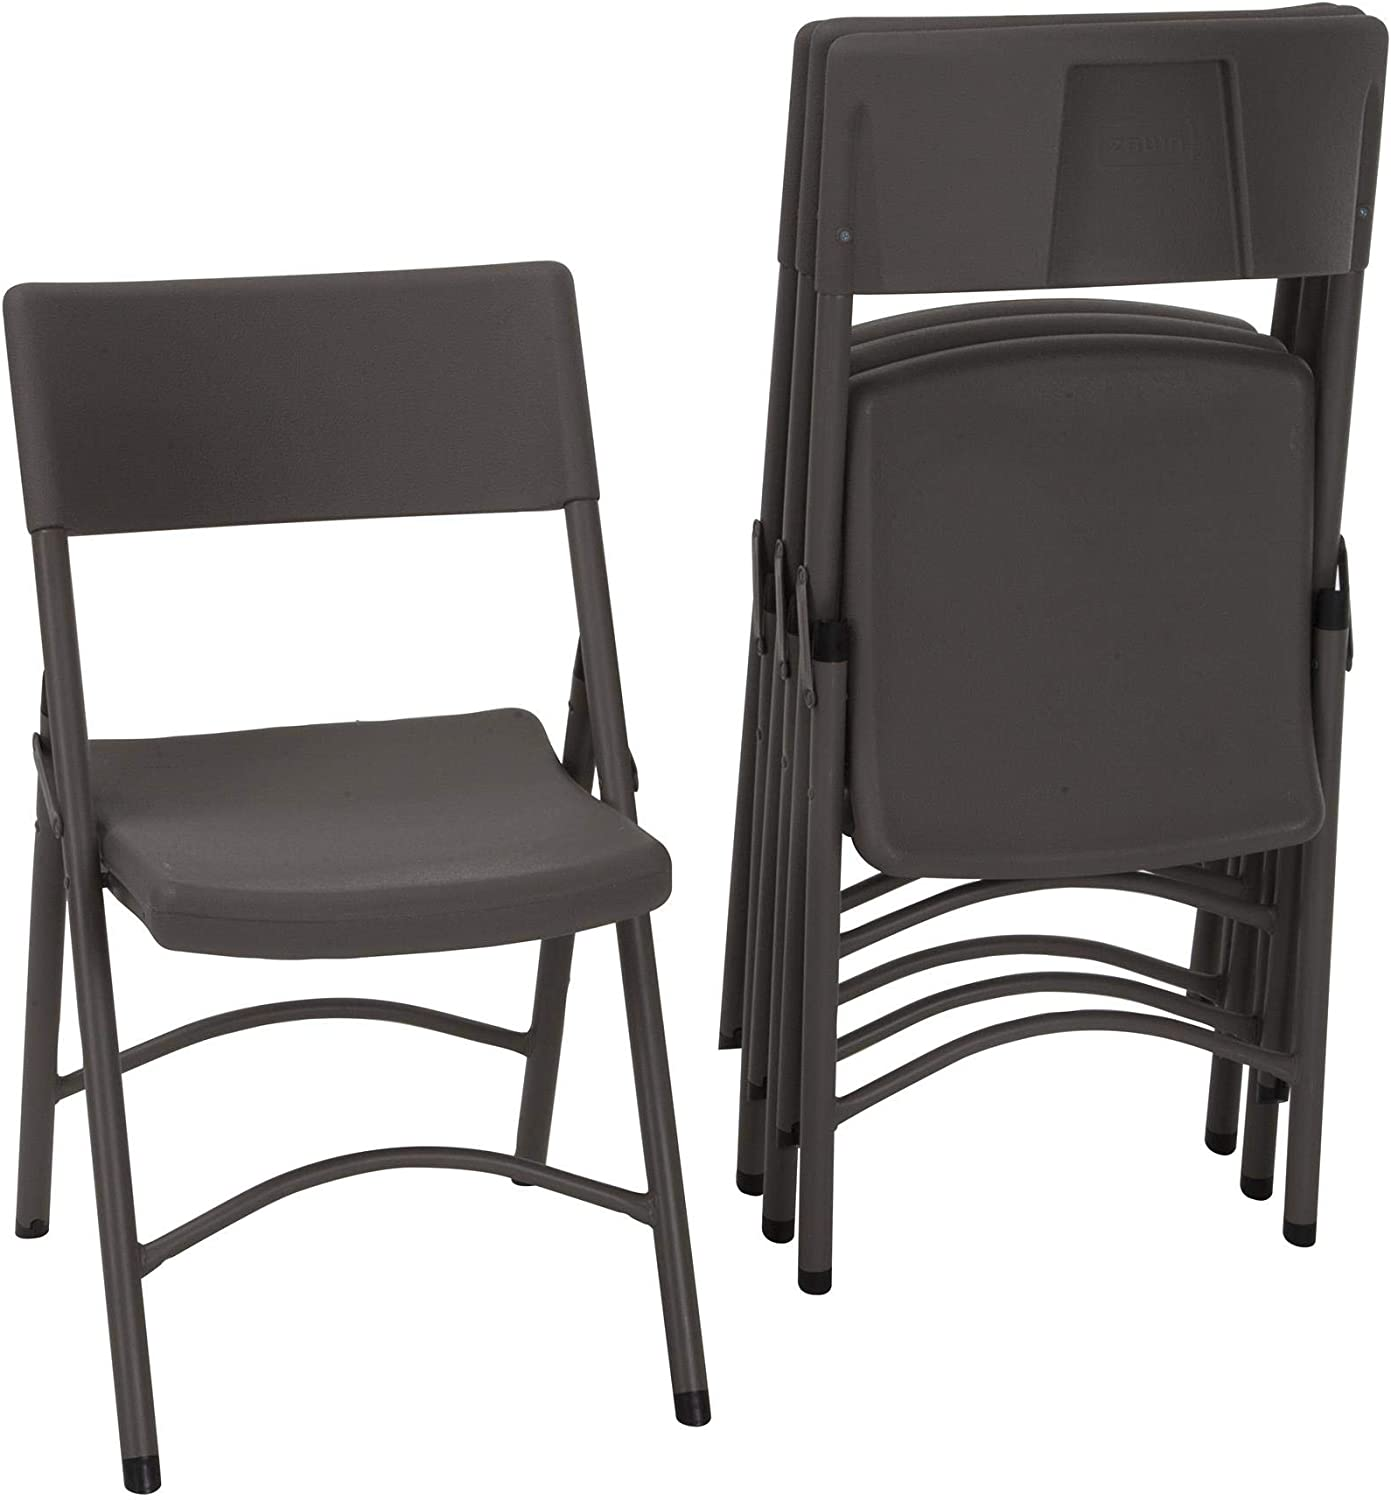 ZOWN Premium Commercial Blow Mold Banquet Folding Chair, Brown, 4 Pack